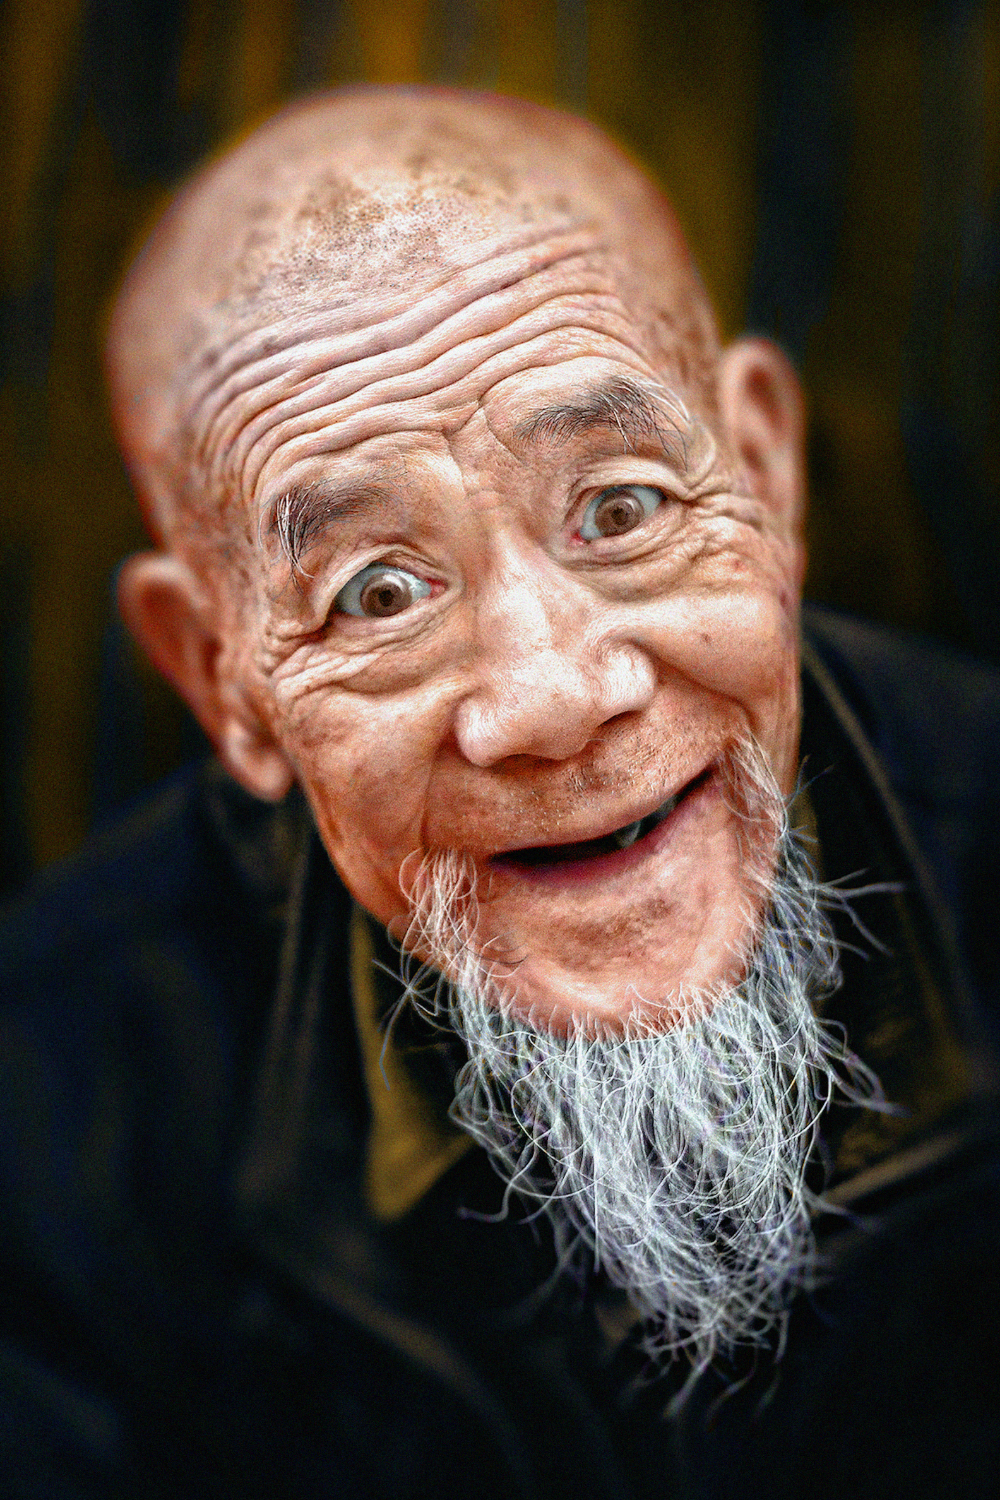 Old Asian Man Google Search Men Photography Model Poses Photography Portrait